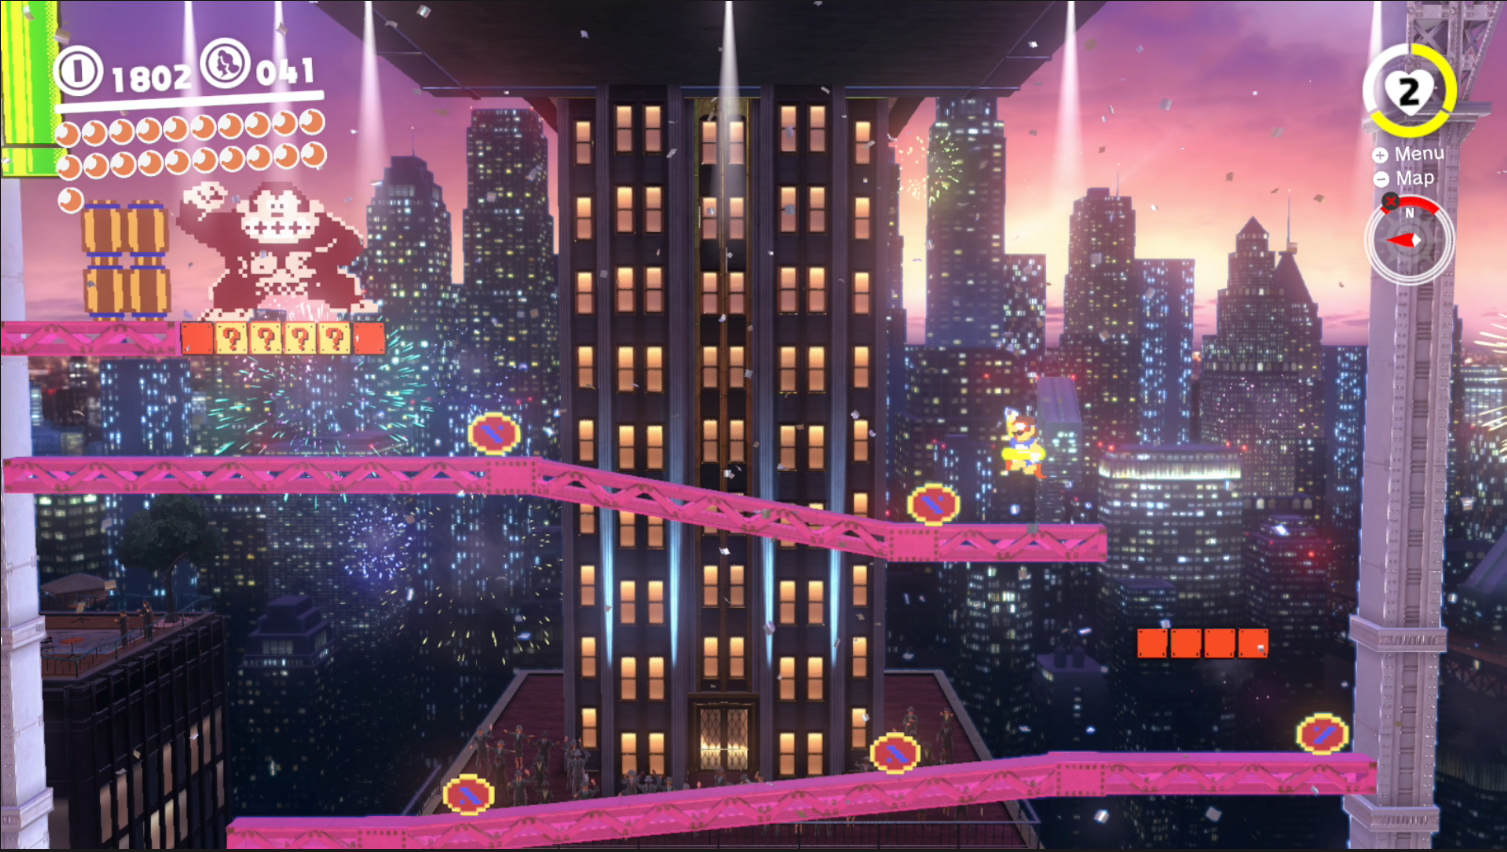 A screenshot of the 2D level resembling the Donkey Kong arcade game in Super Mario Odyssey